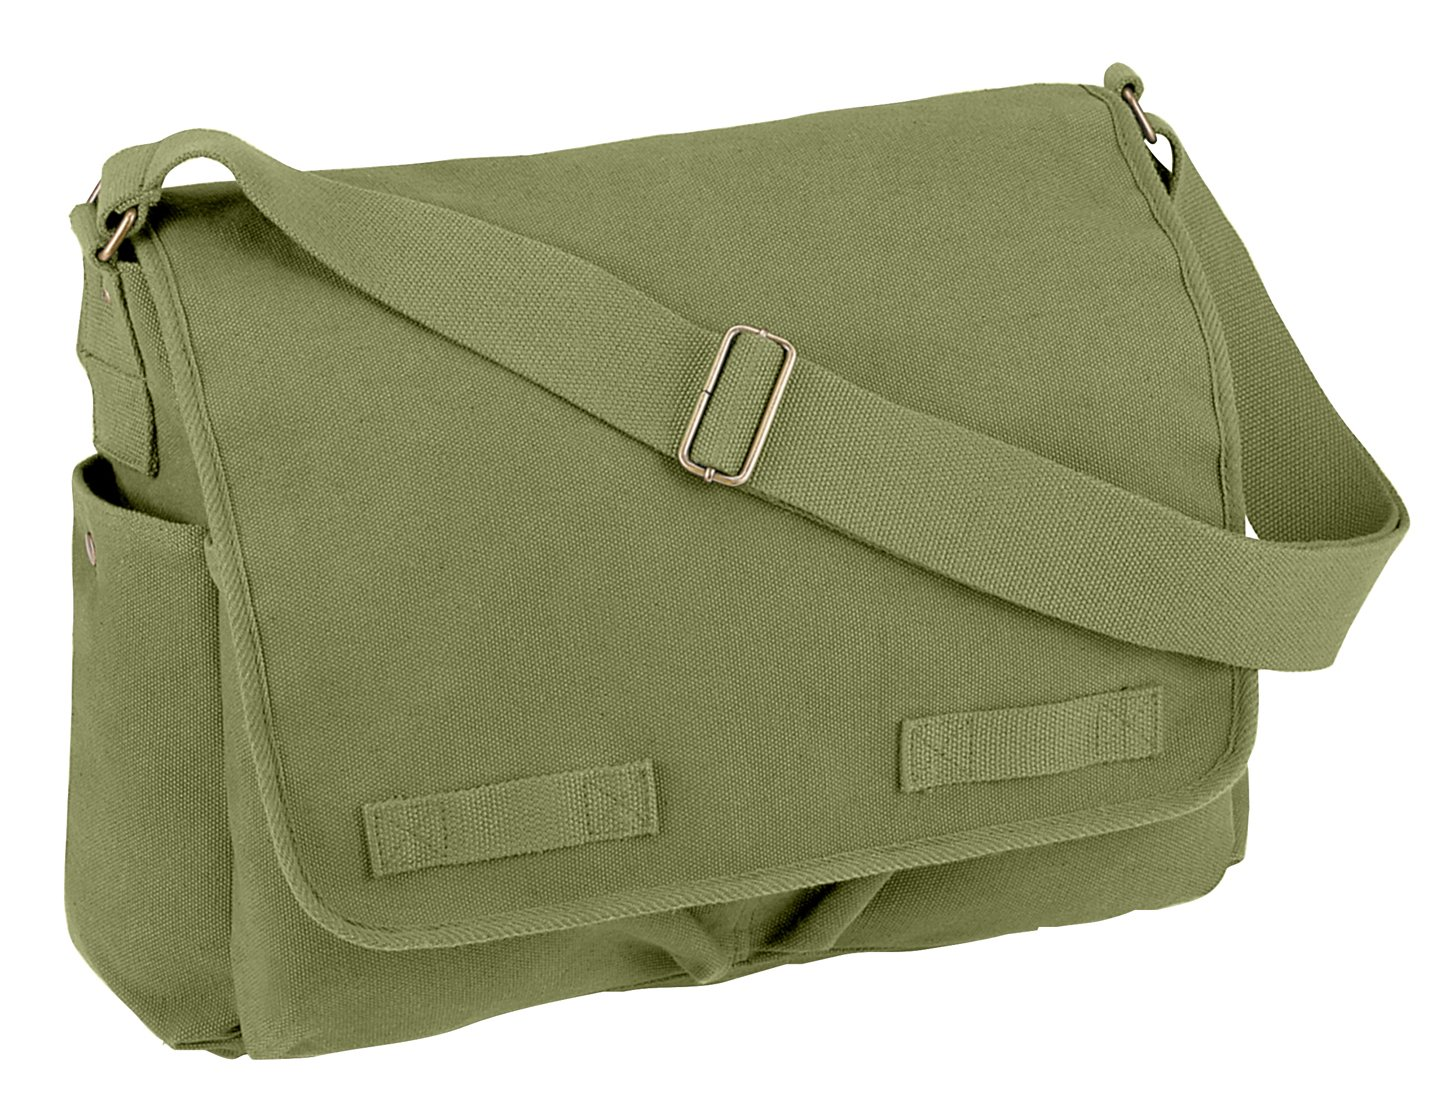 Rothco Hw Canvas Classic Messenger Bag, Olive Drab